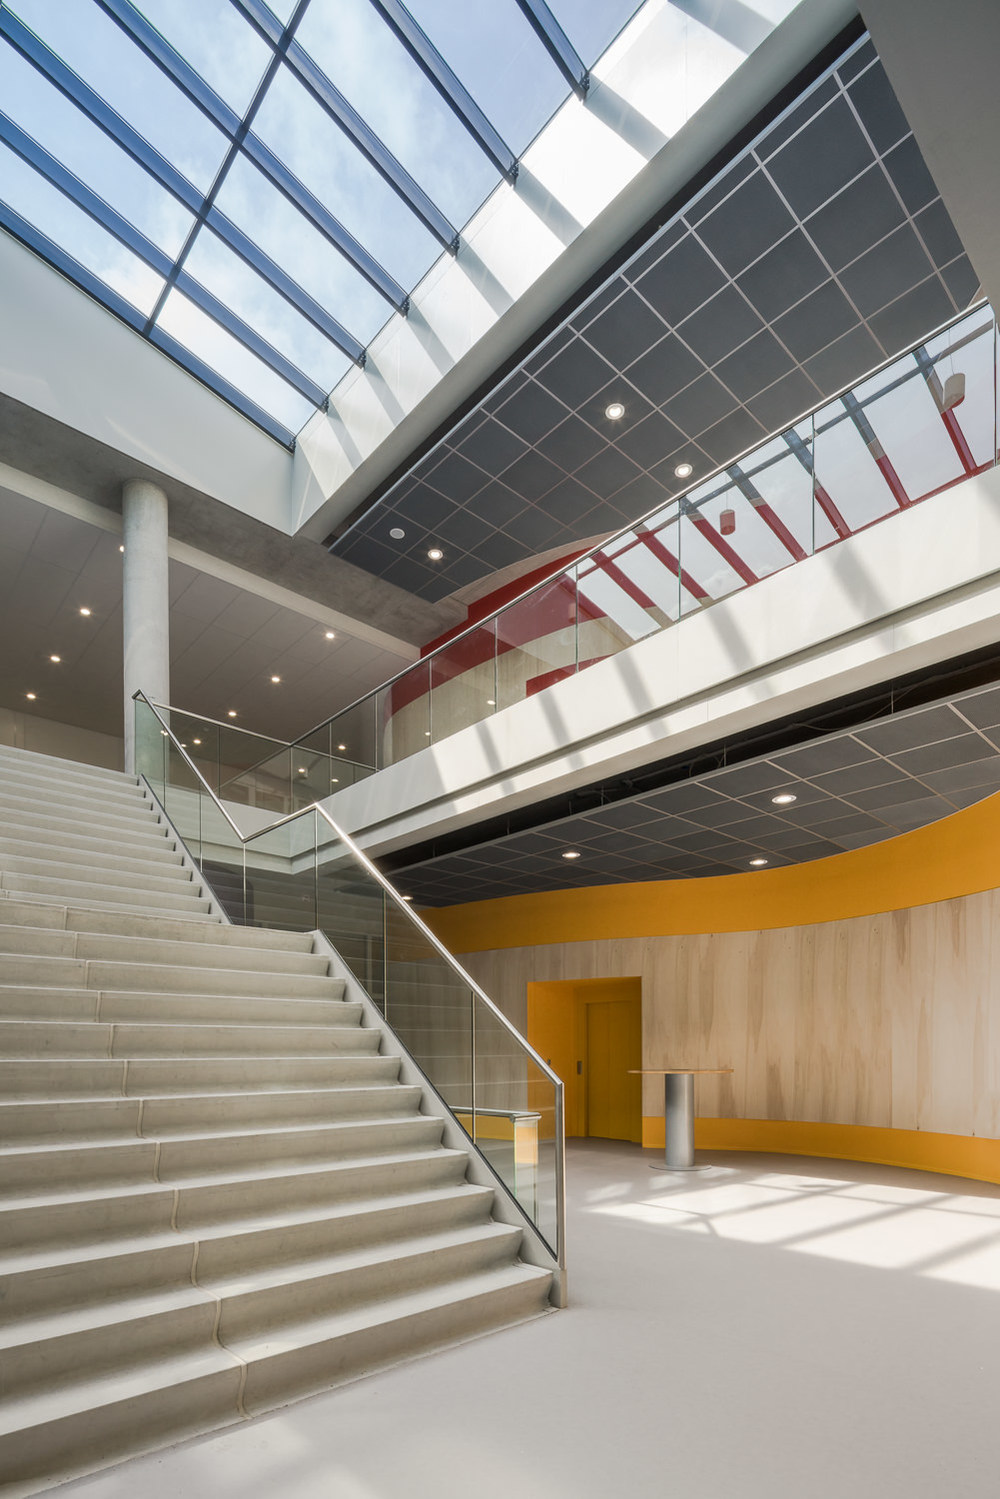 going through the zernike college by mark hadden architectuurfotograaf, amsterdam